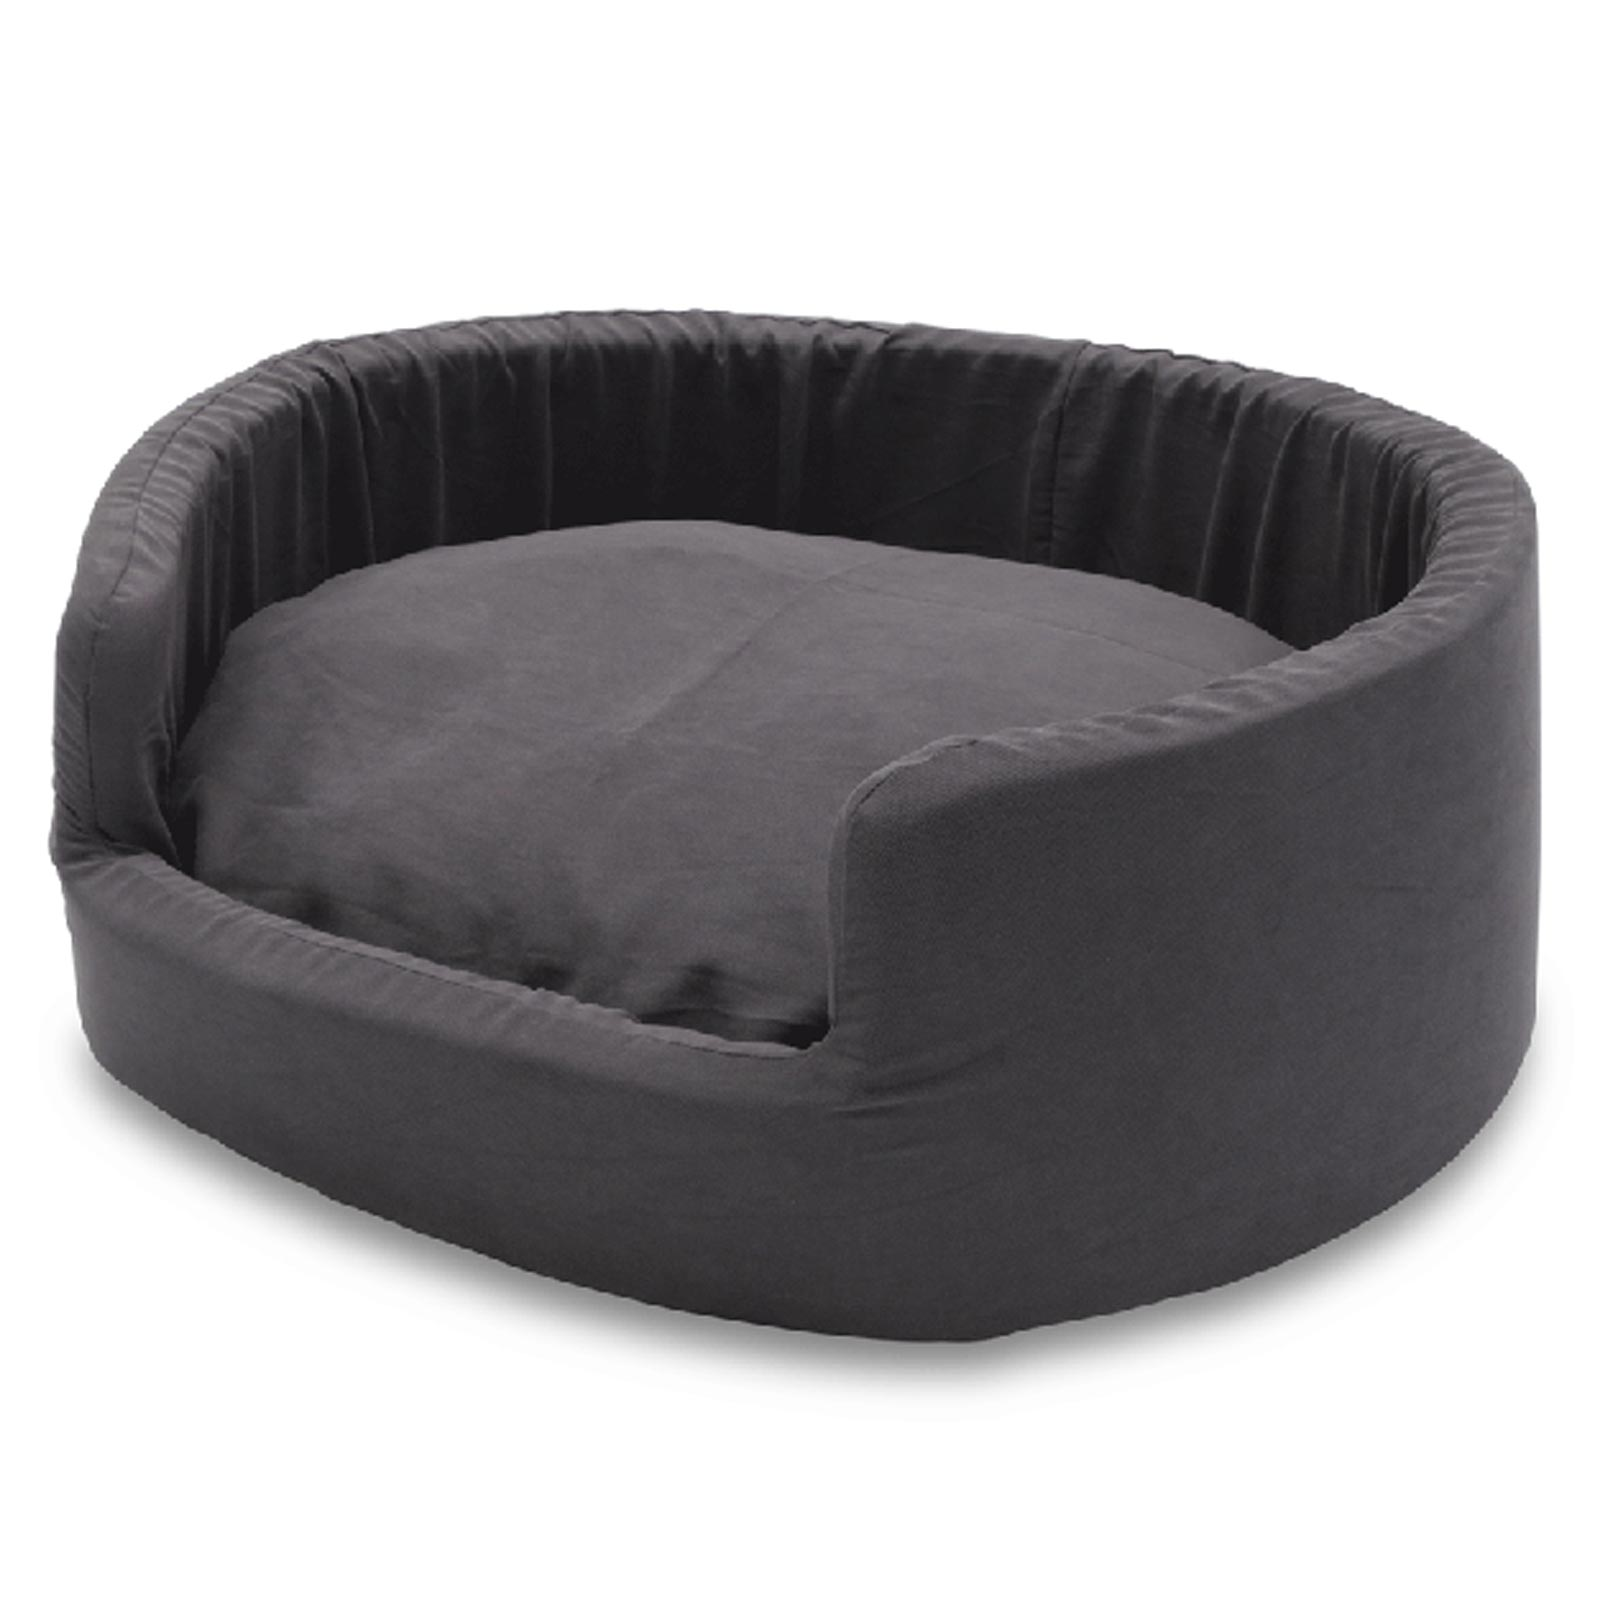 Extra Large Dog Bed Covers